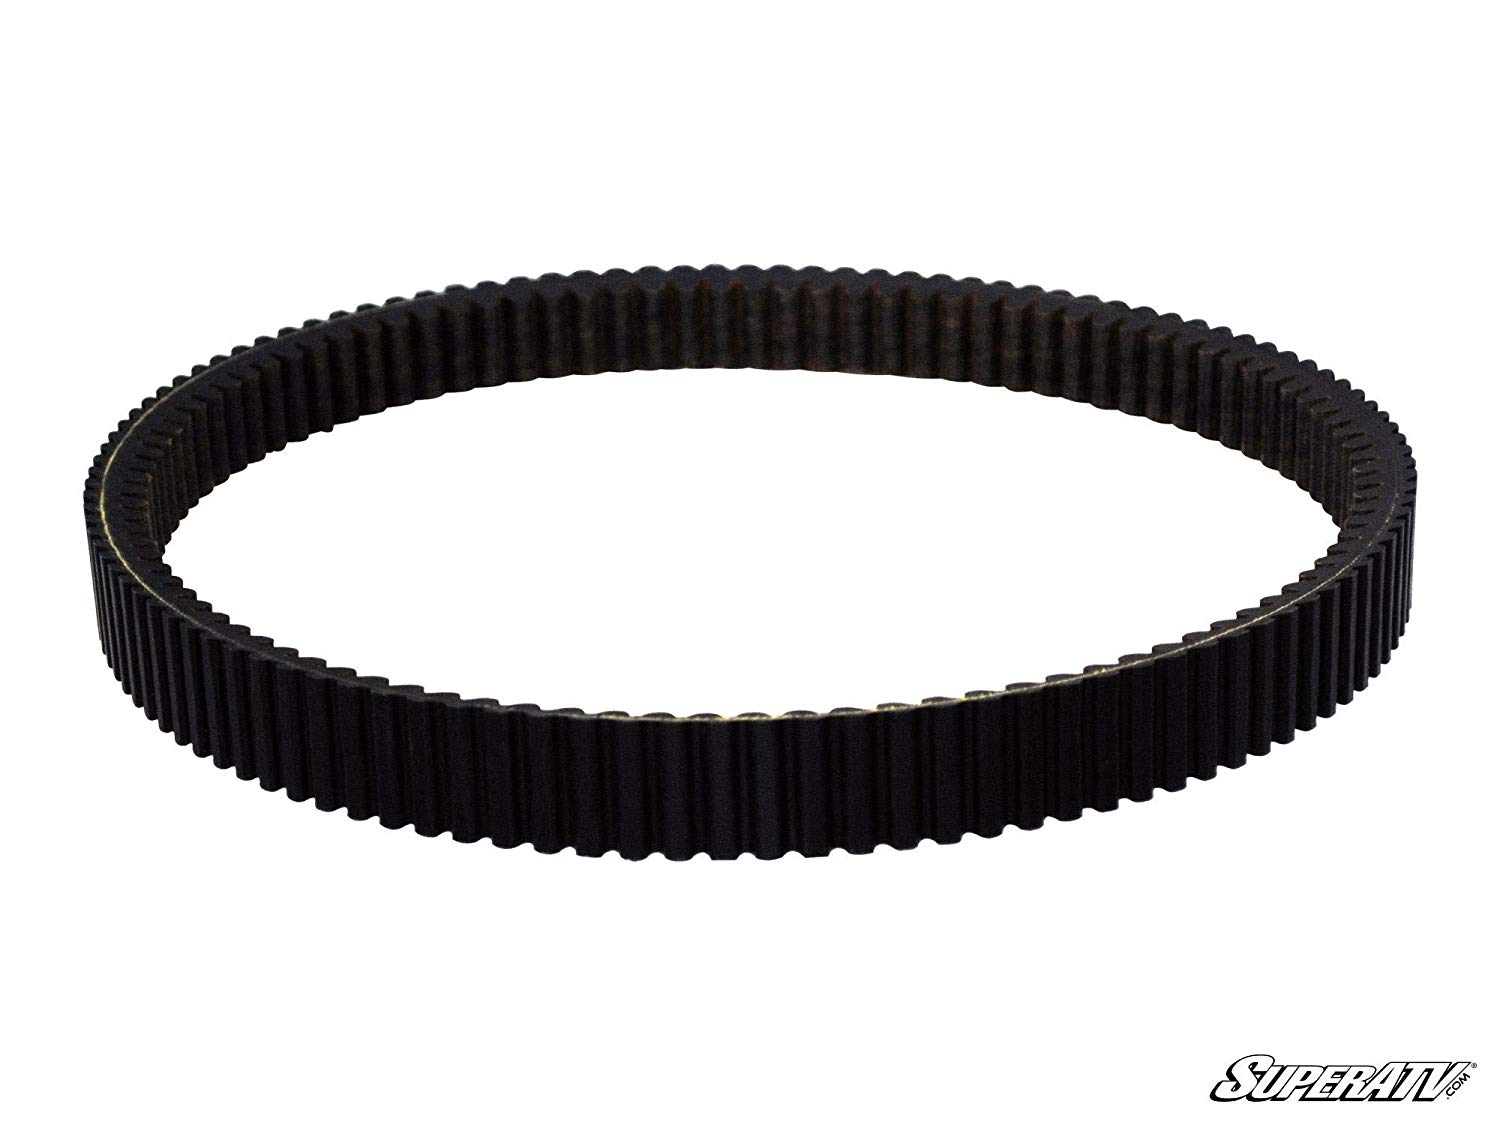 Polaris Sportsman 335/400/450/500/500 EFI/500 HO/400 HO/500 6x6/4X4 CVT Drive Belt (OEM # 3211077) - Standard Duty by SuperATV 20G4022